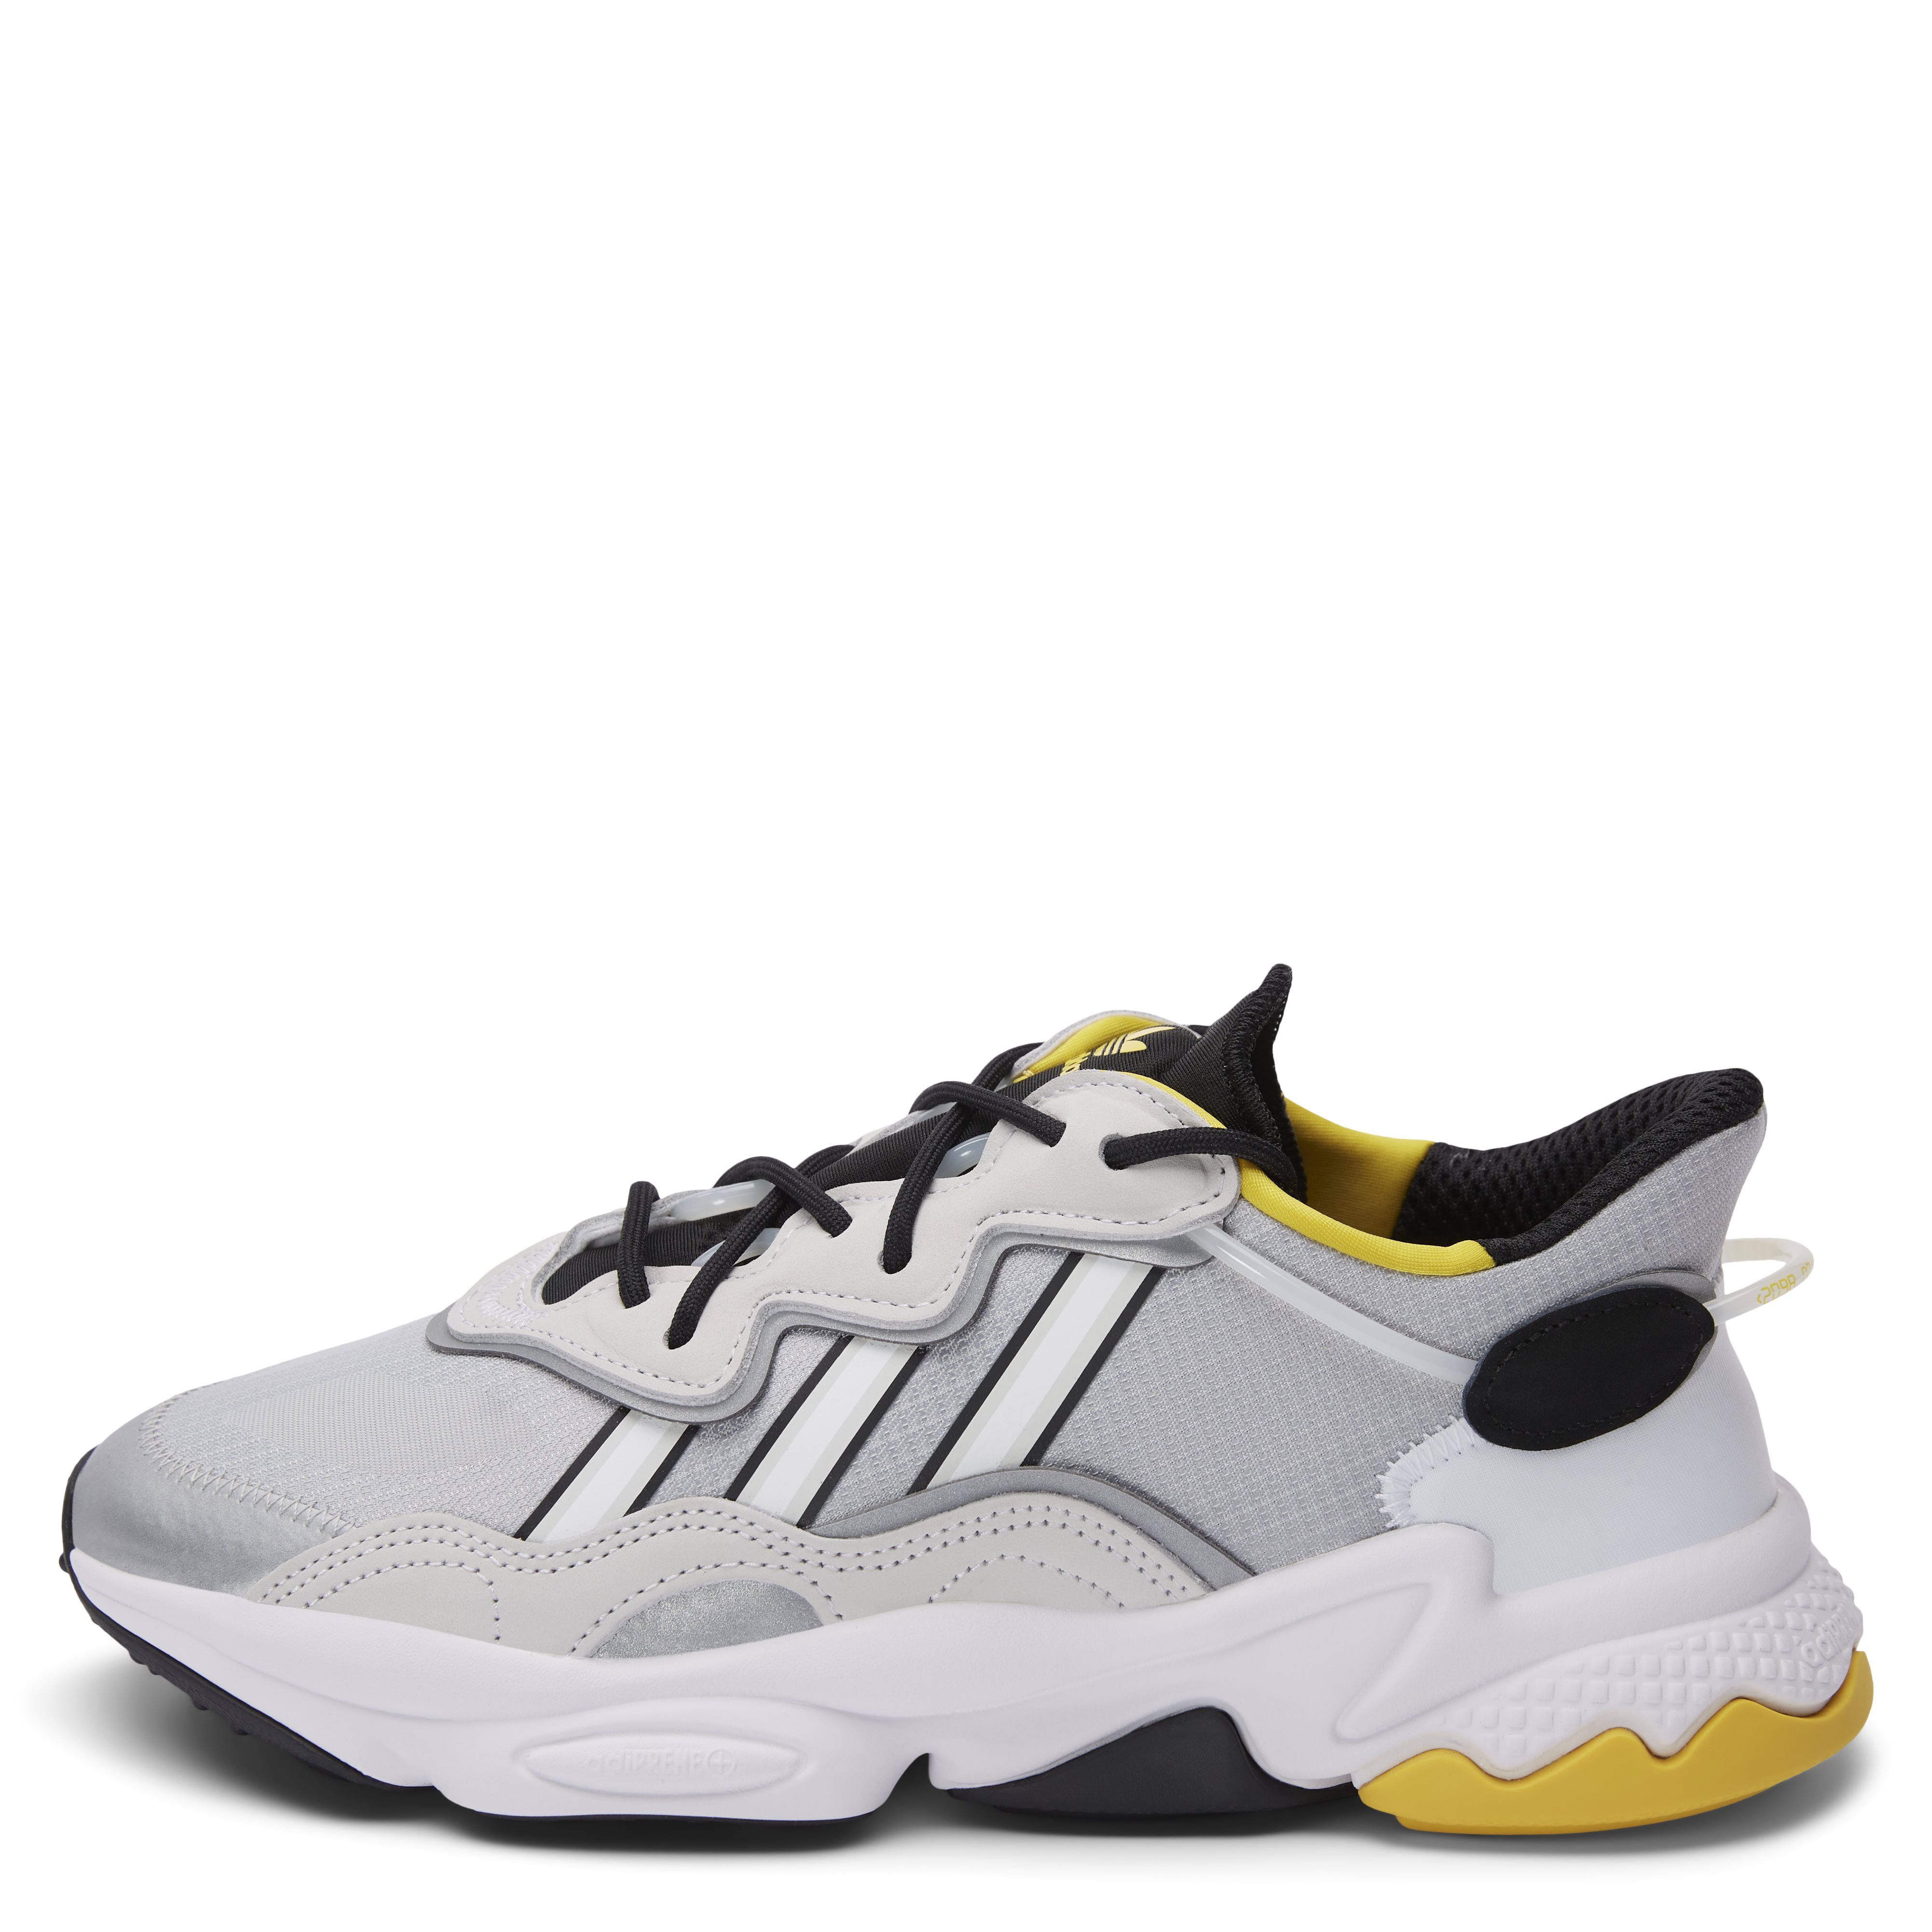 Ozweego Sneaker - Shoes - White